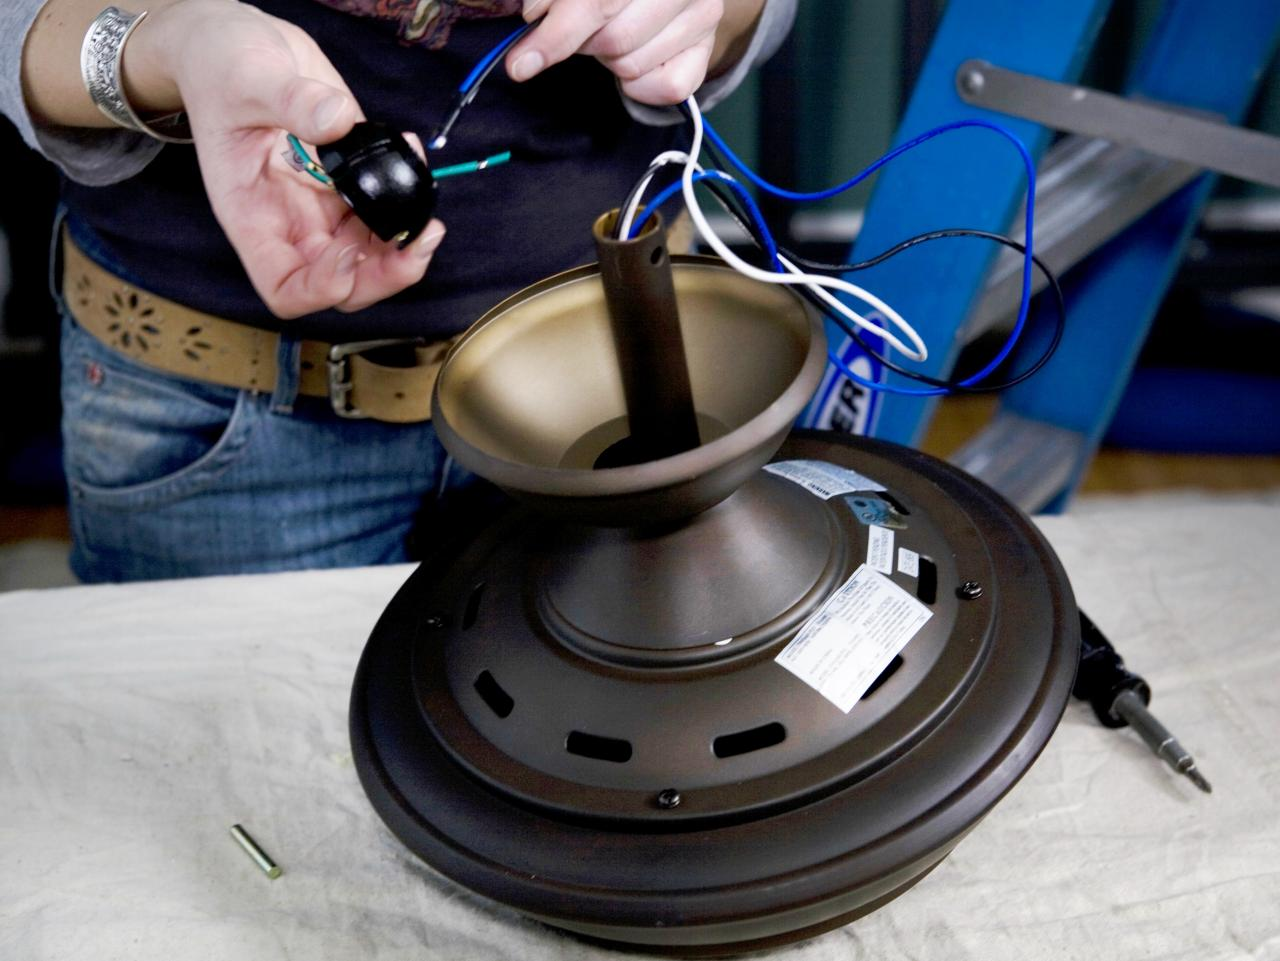 Pleasing How To Replace A Light Fixture With A Ceiling Fan How Tos Diy Wiring Cloud Rometaidewilluminateatxorg